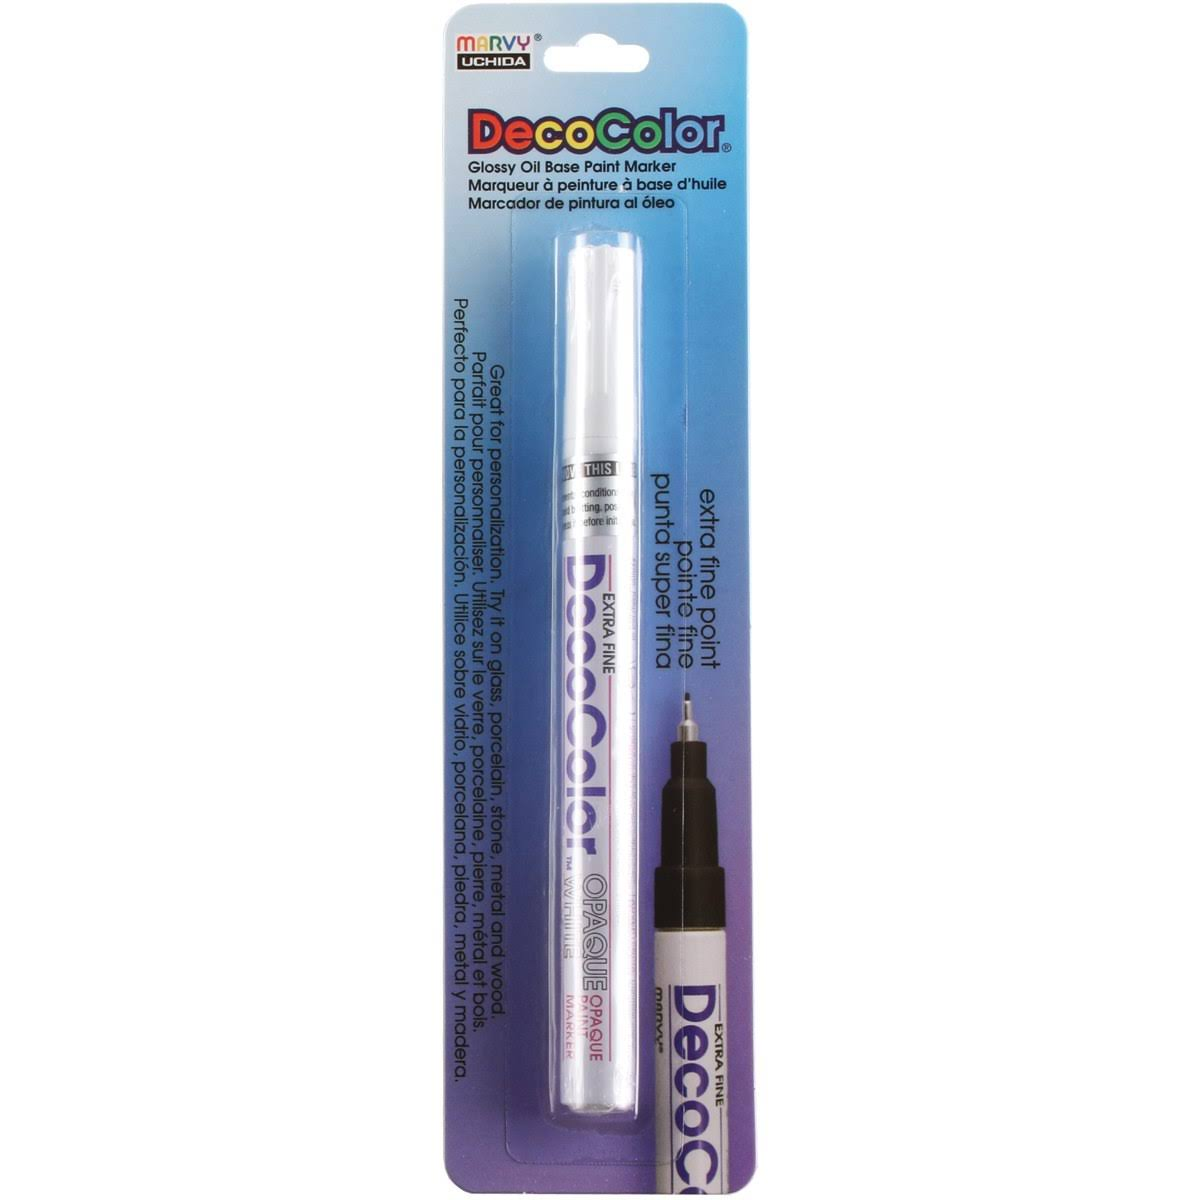 Uchida Deco Color Paint Marker - White